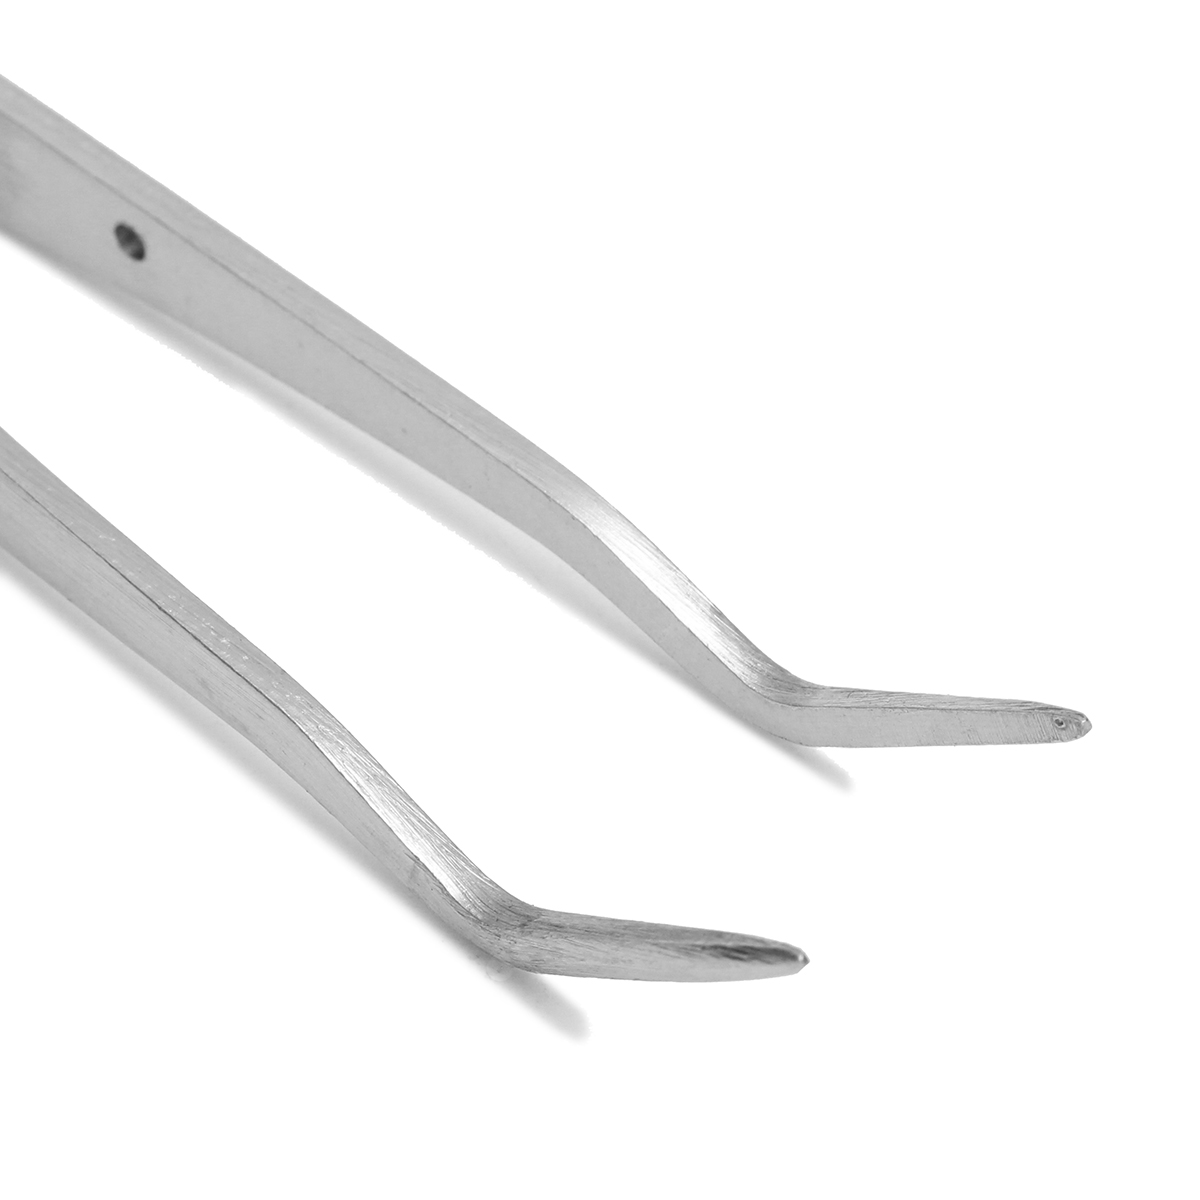 10Pcs 6inch Stainless Steel Dental Tweezers Surgical Lab Instruments Dentistry Tool